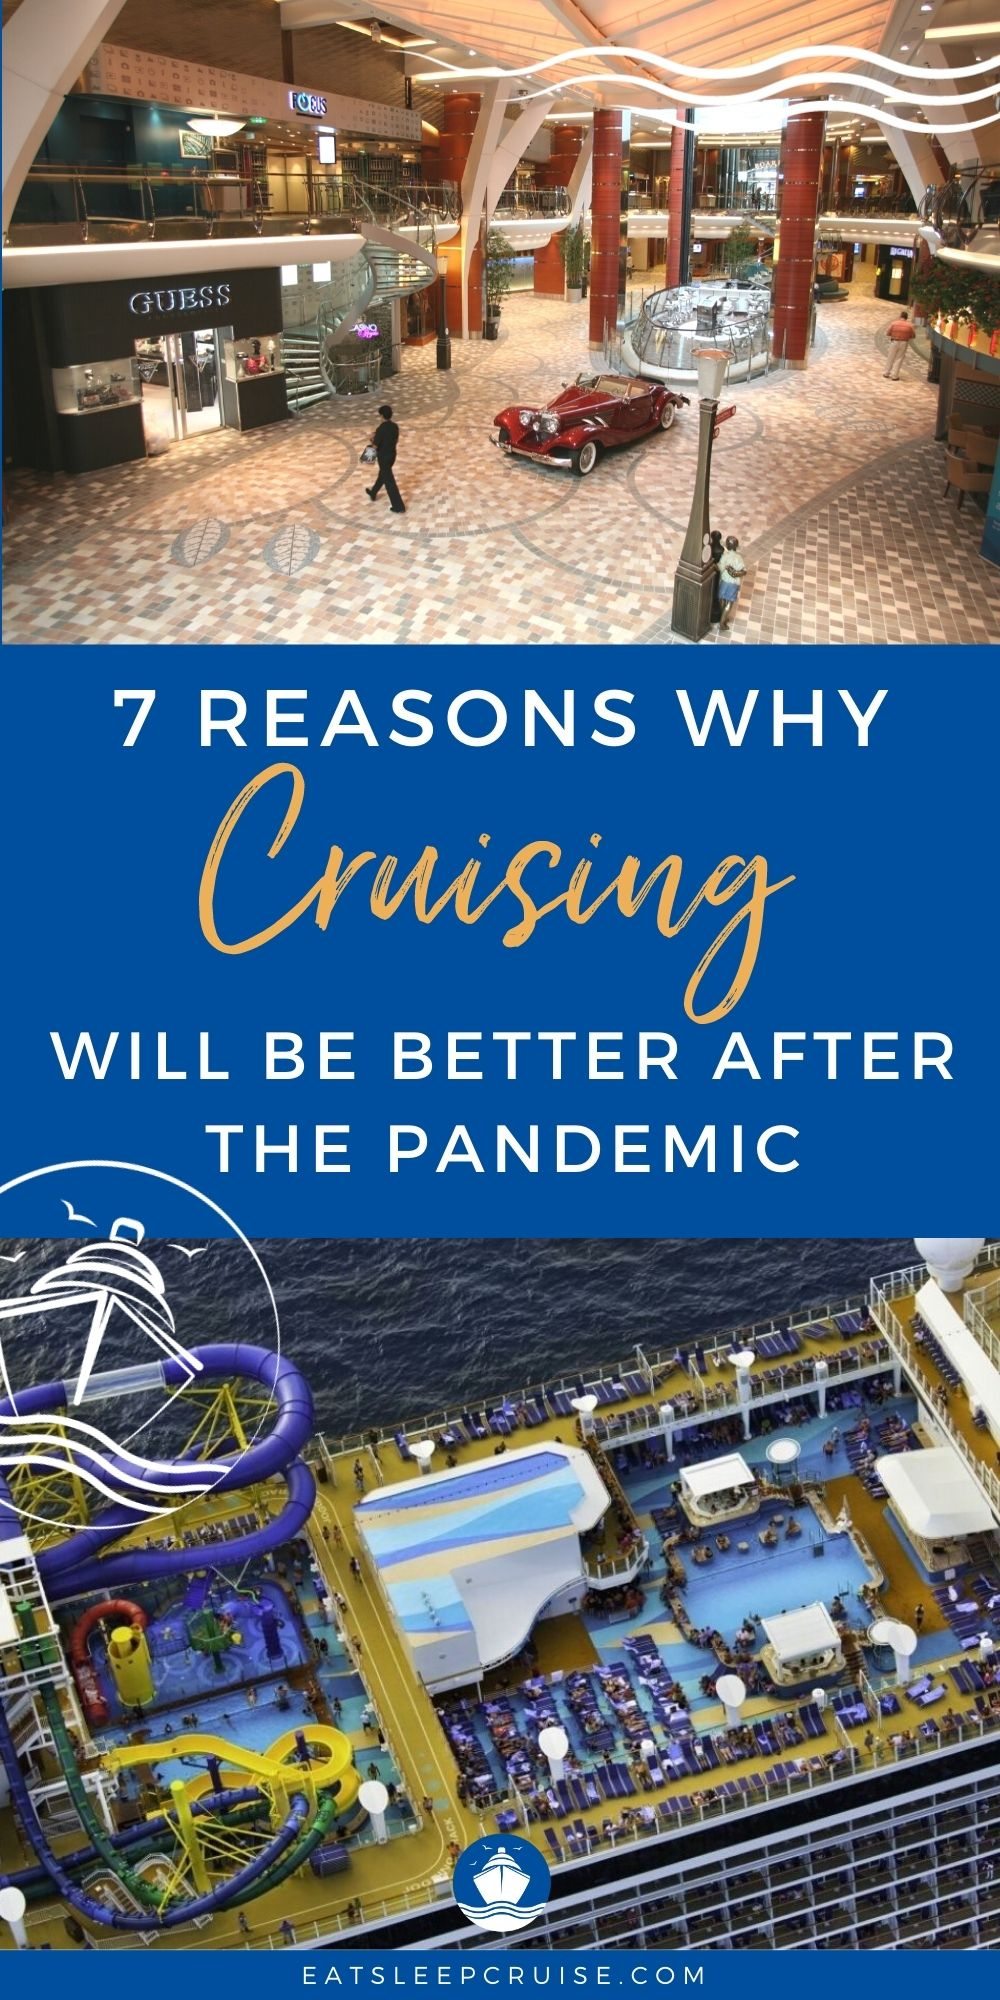 Why Cruising Will be Better After the Pandemic